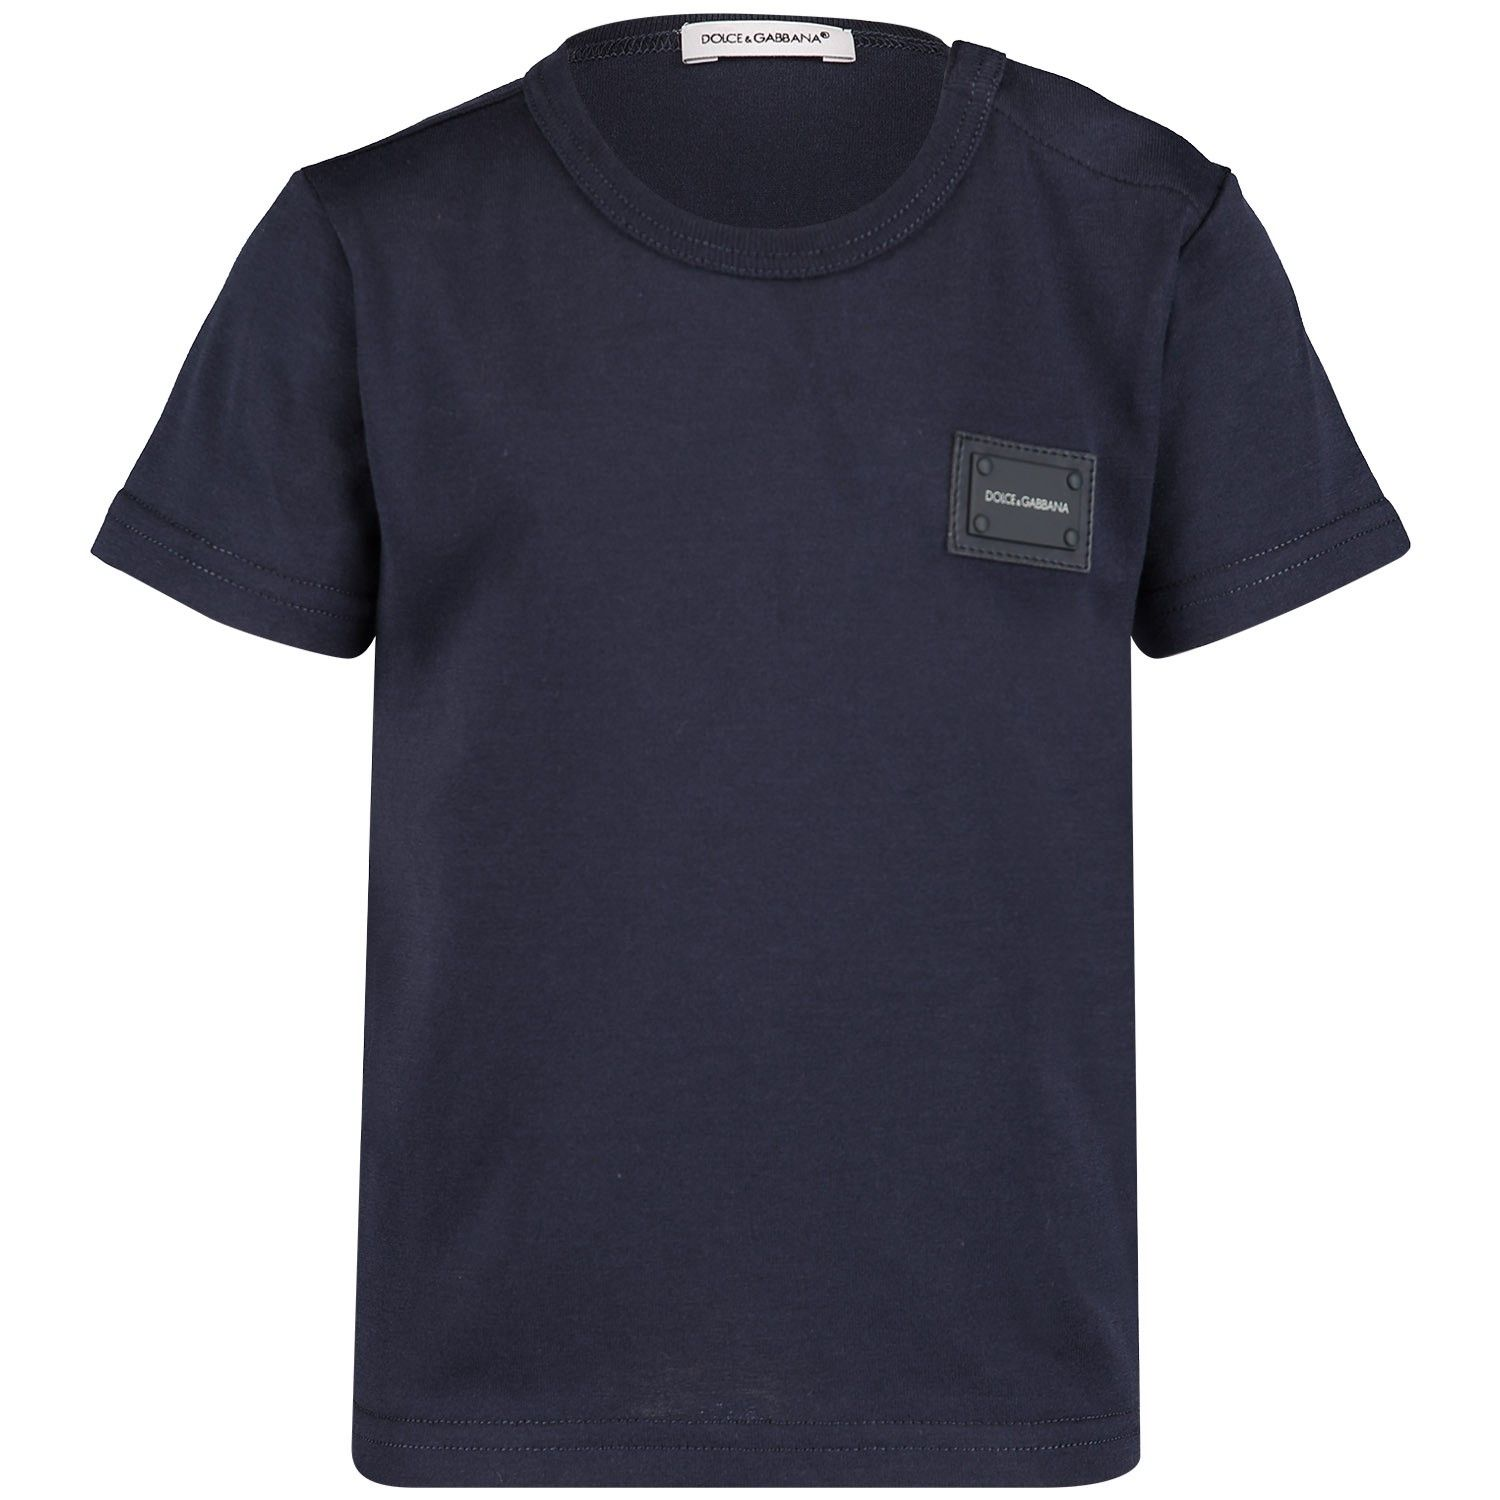 Picture of Dolce & Gabbana L1JT7T baby shirt navy